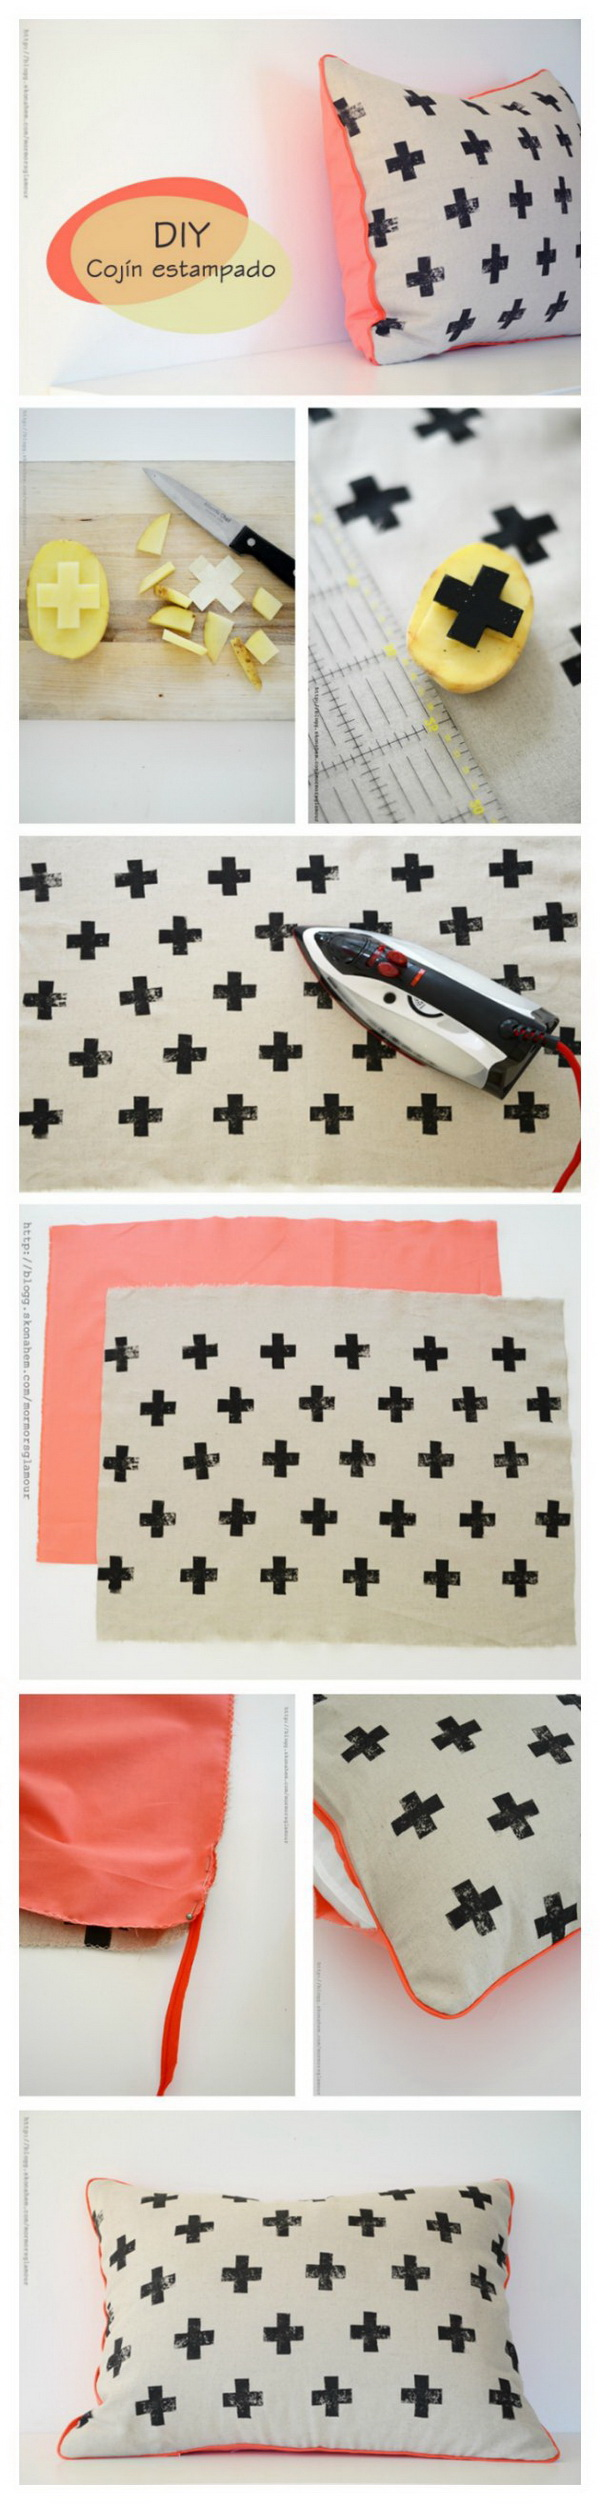 DIY Potato Stamped Pillow with Cross Prints: Create a fun pillow using a potato stamp and fabric ink! An easy and pretty DIY project for teenage girls bedroom!